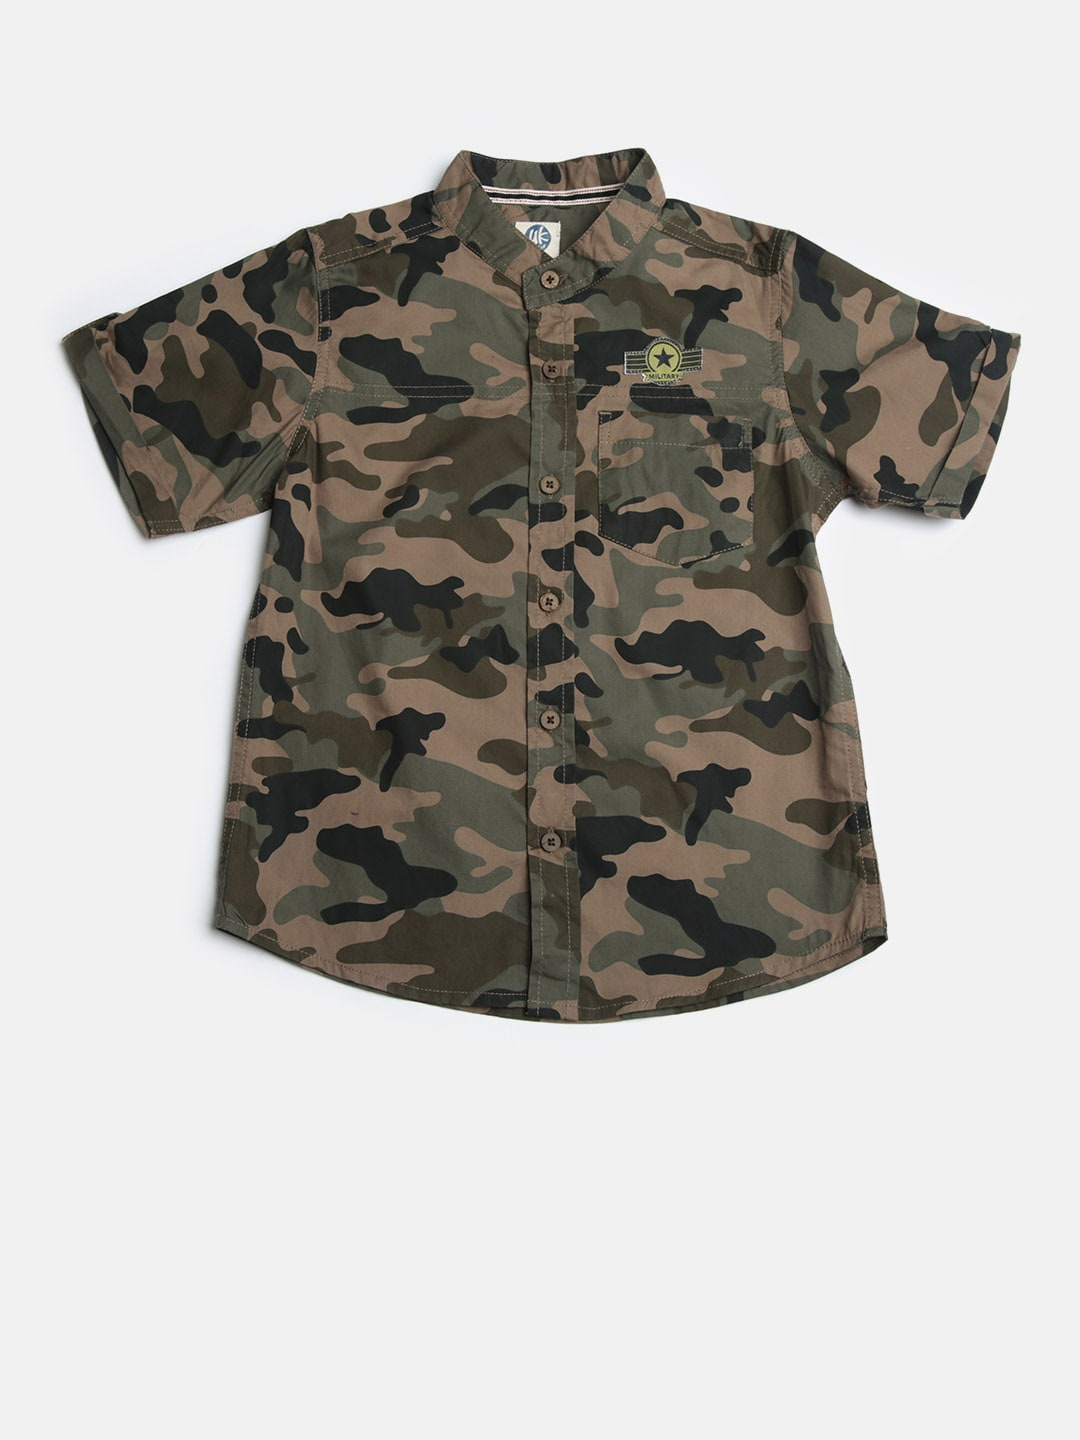 8c14e1bef79 Camouflage Shirts - Buy Camouflage Shirts online in India